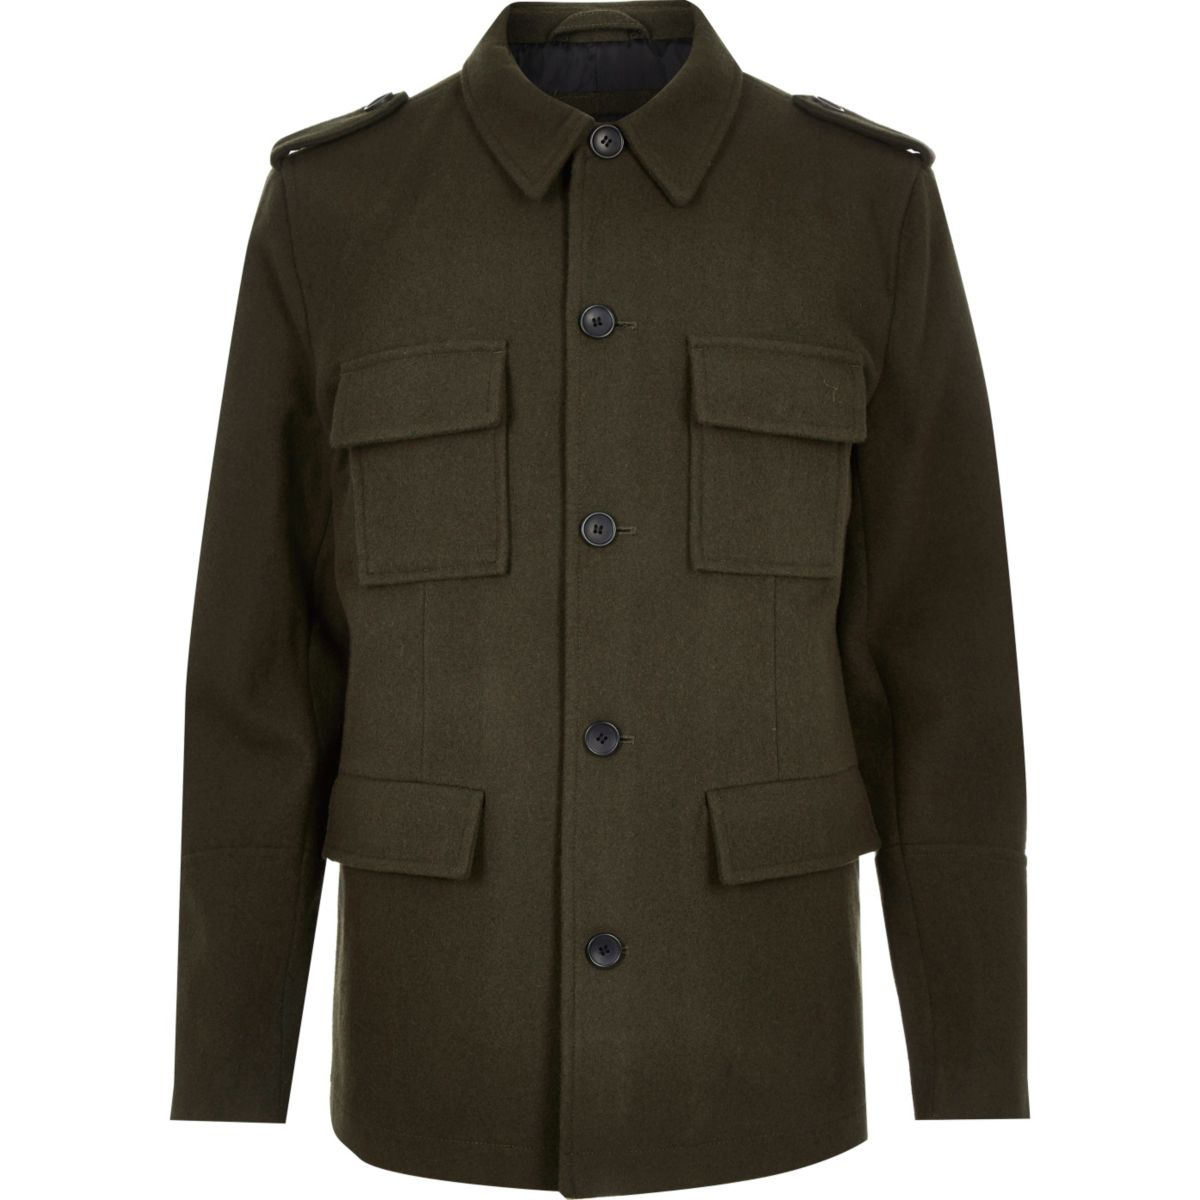 Green smart wool-blend military jacket